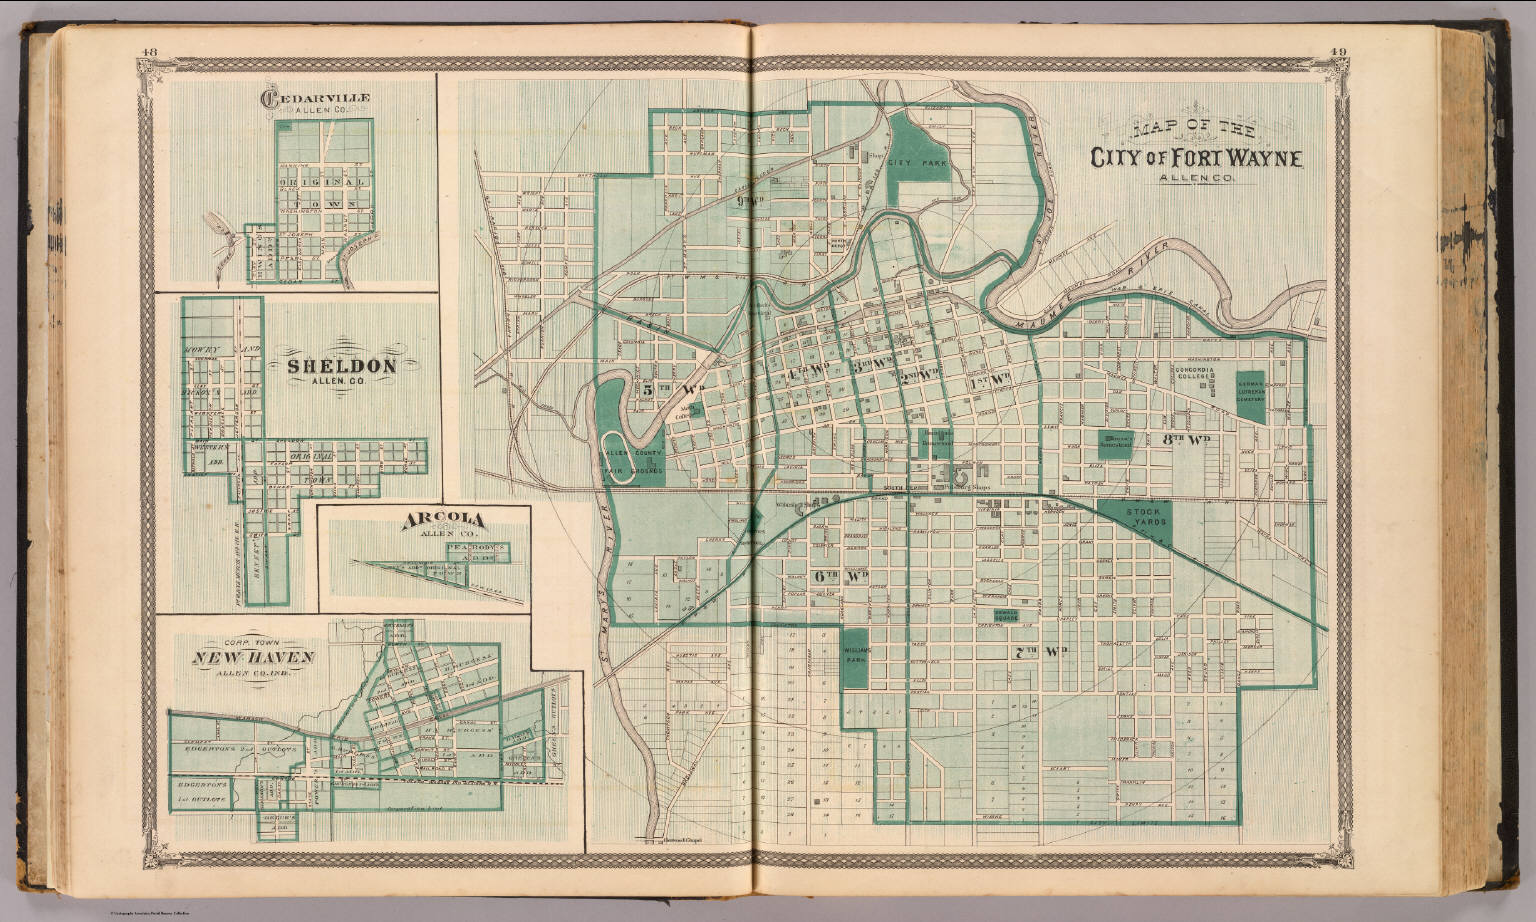 Map Of The City Of Fort Wayne With Cedarville Sheldon Arcola